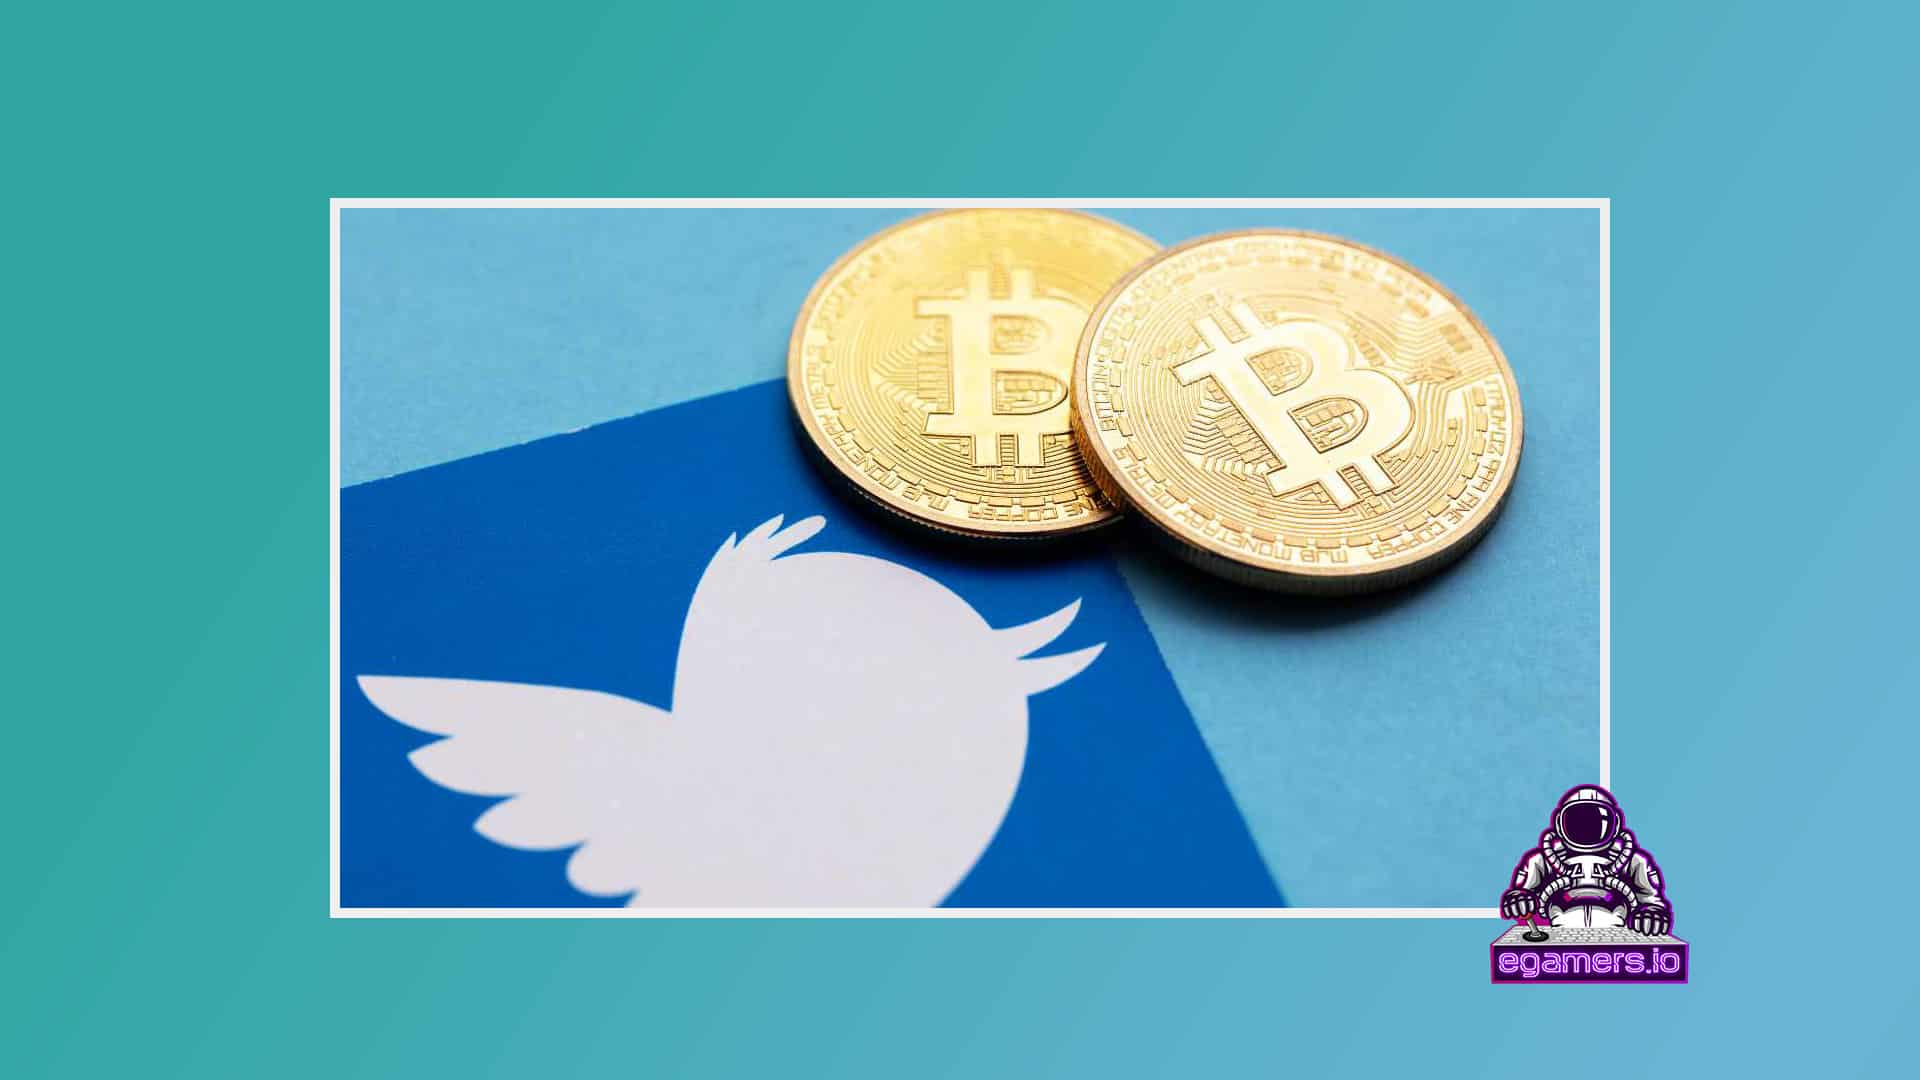 Twitter Bitcoin Payments